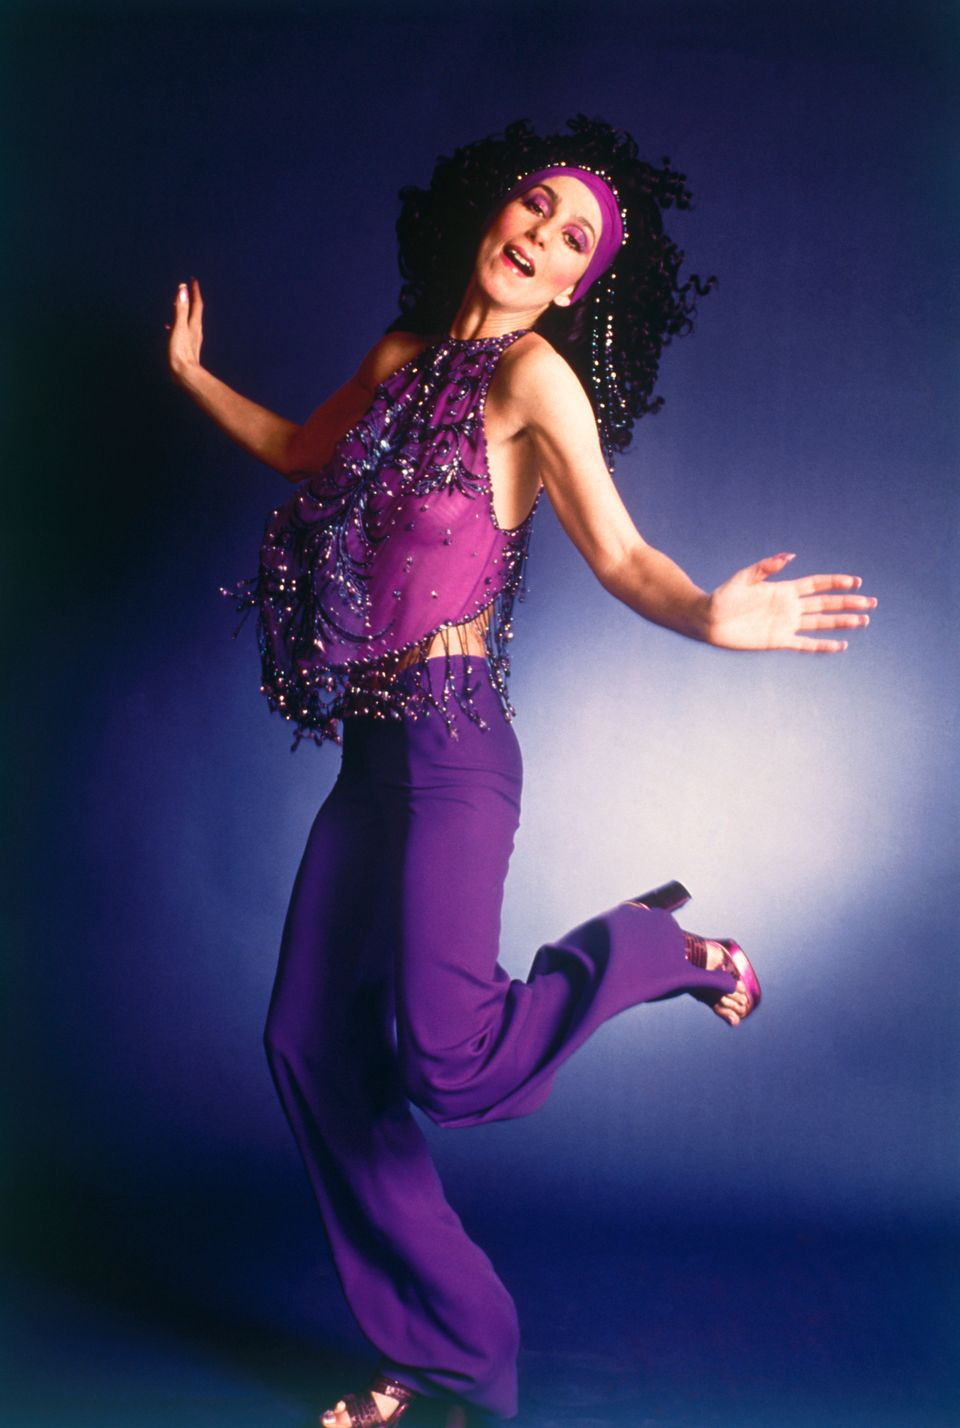 Cher Bono wearing purple pants outfit.